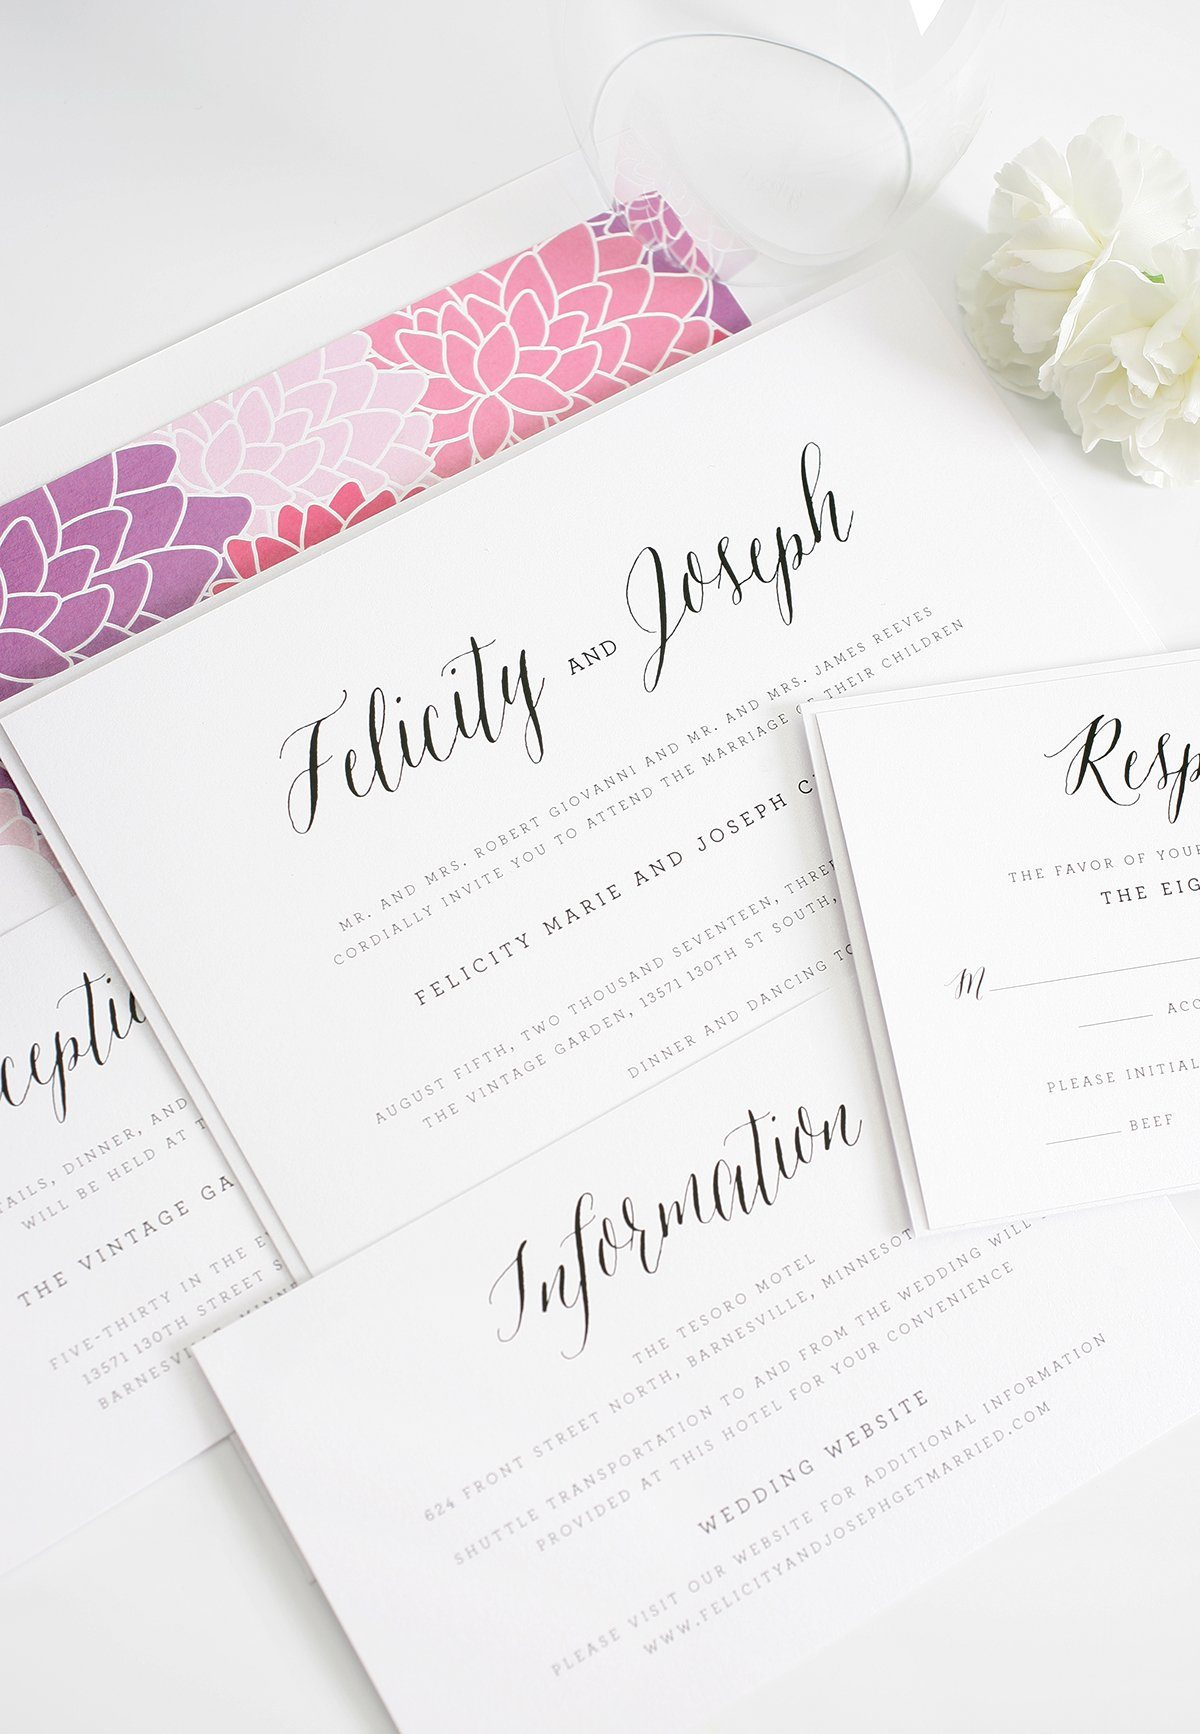 Rustic wedding invitation with purple and pink floral pattern